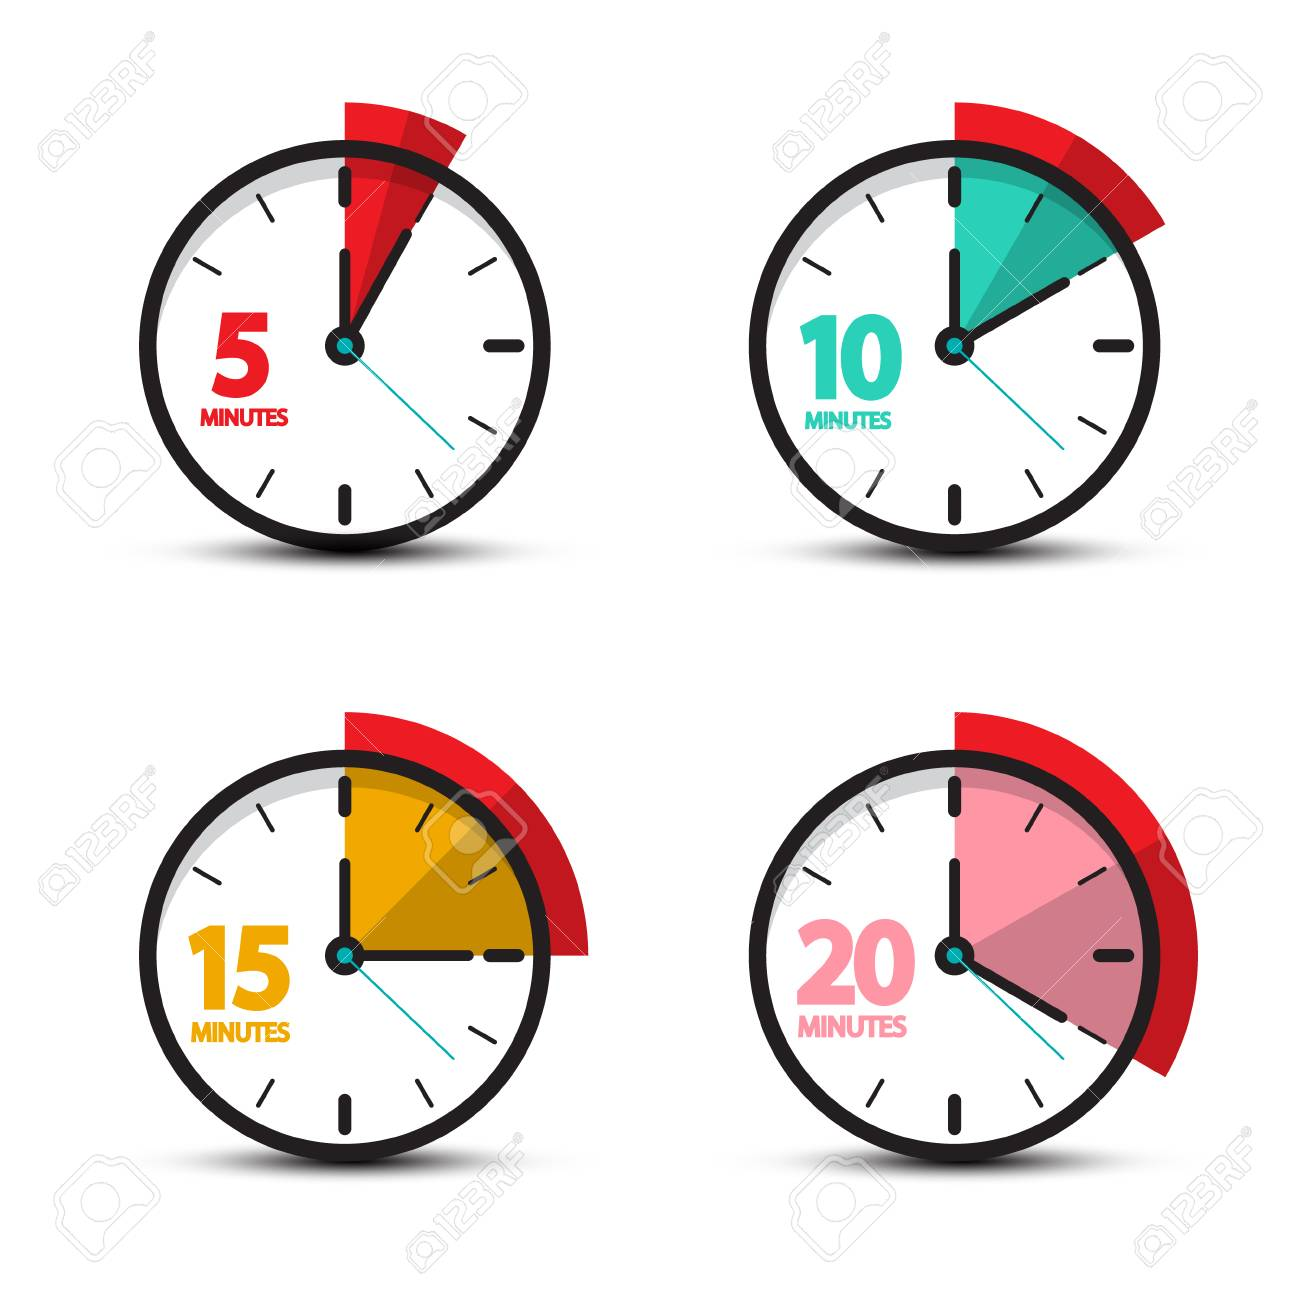 5, 10, 15, 20 Minutes Analog Clock Icons. Vector Time Symbol. - 103302433